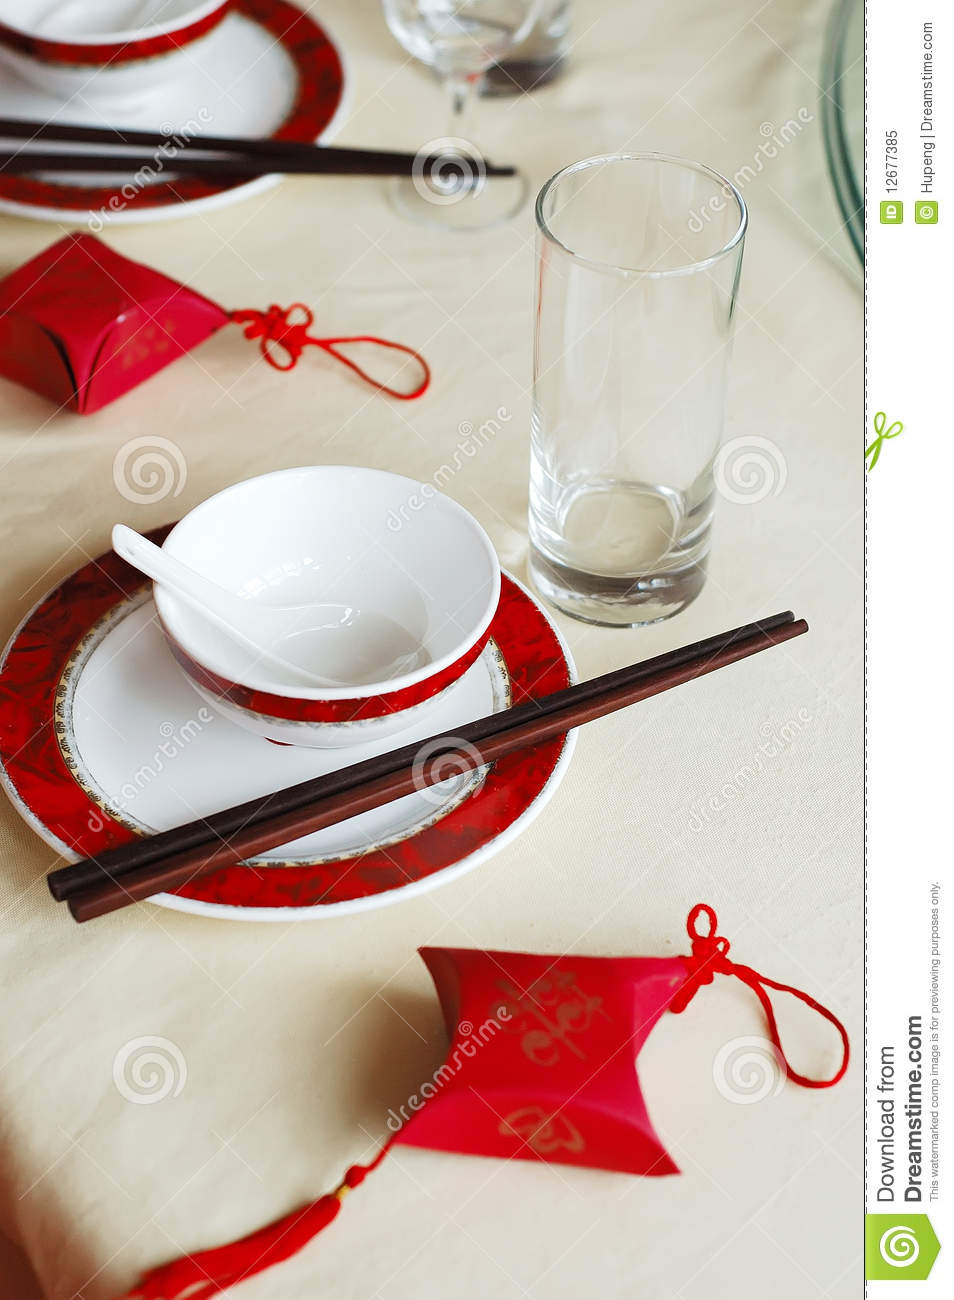 Chinese Wedding Banquet Table Setting Stock Image Image